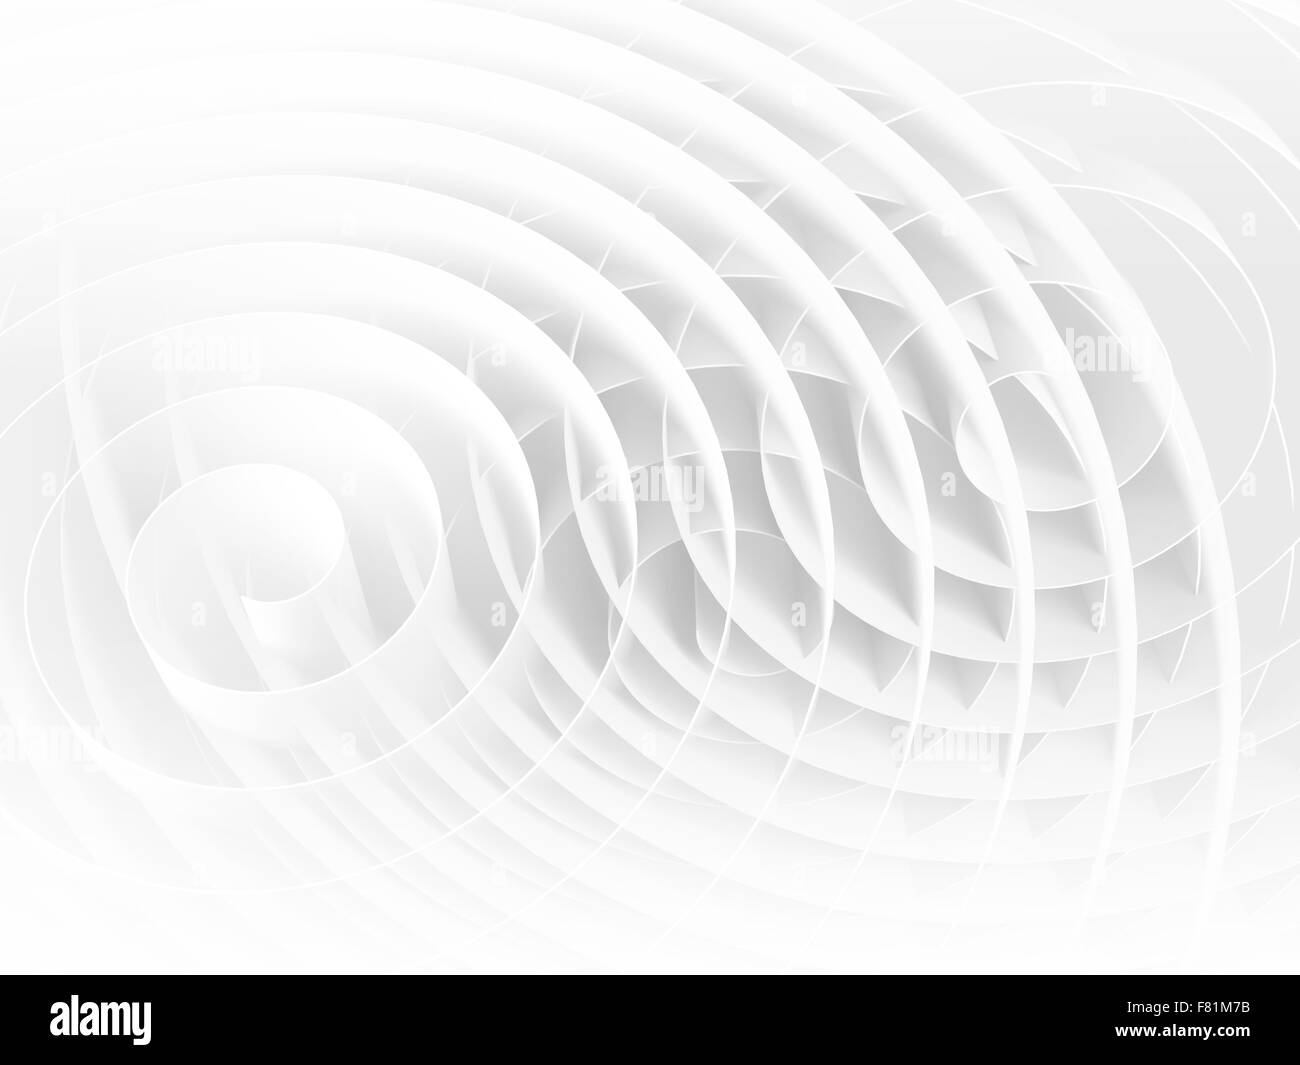 White 3d spirals with soft shadows, abstract digital illustration, background pattern - Stock Image